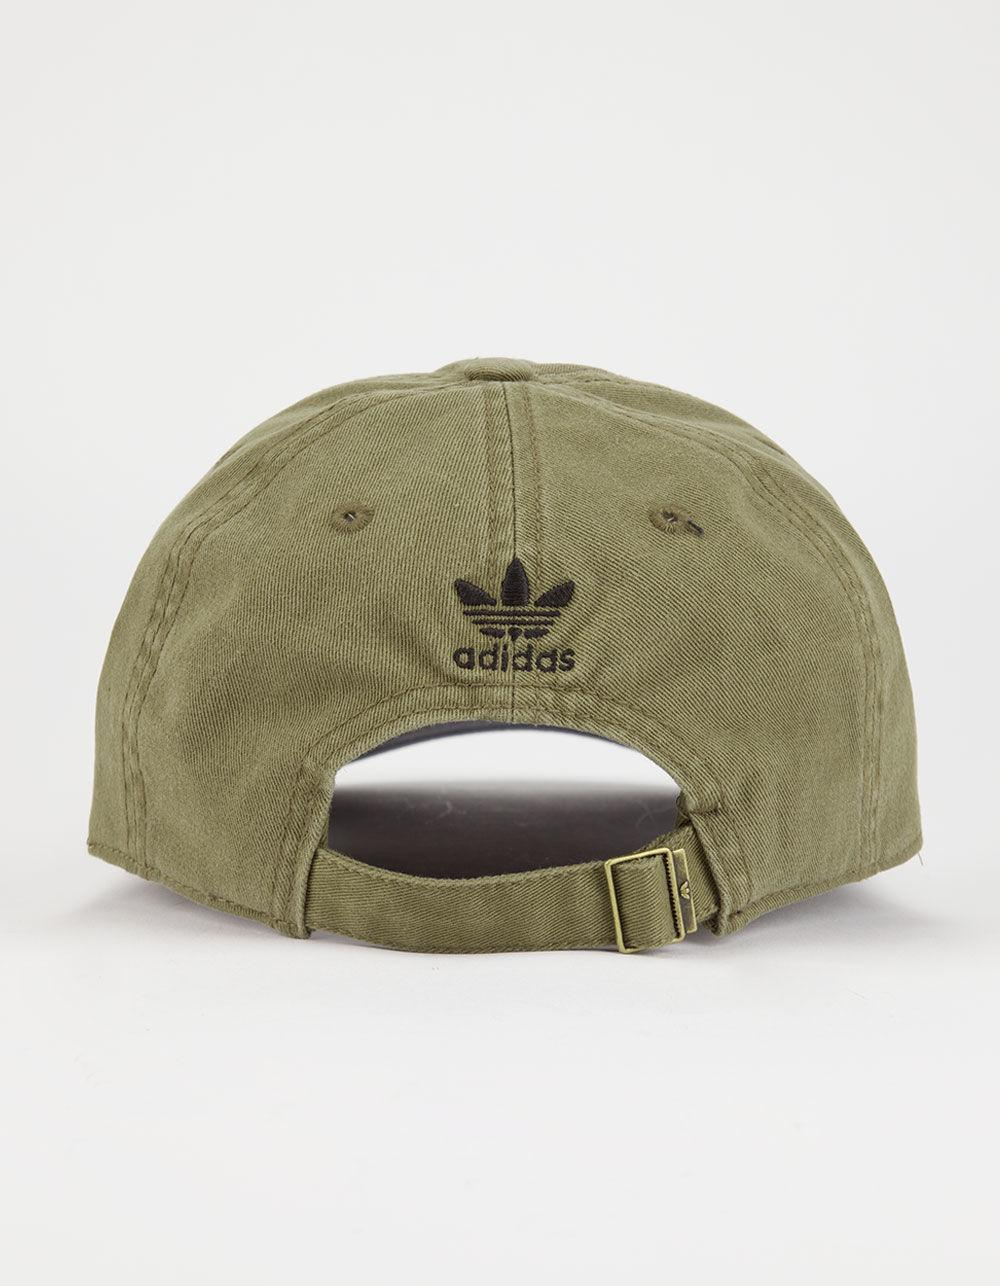 0214b5e46dc Lyst - Adidas Originals Relaxed Womens Dad Hat in Green